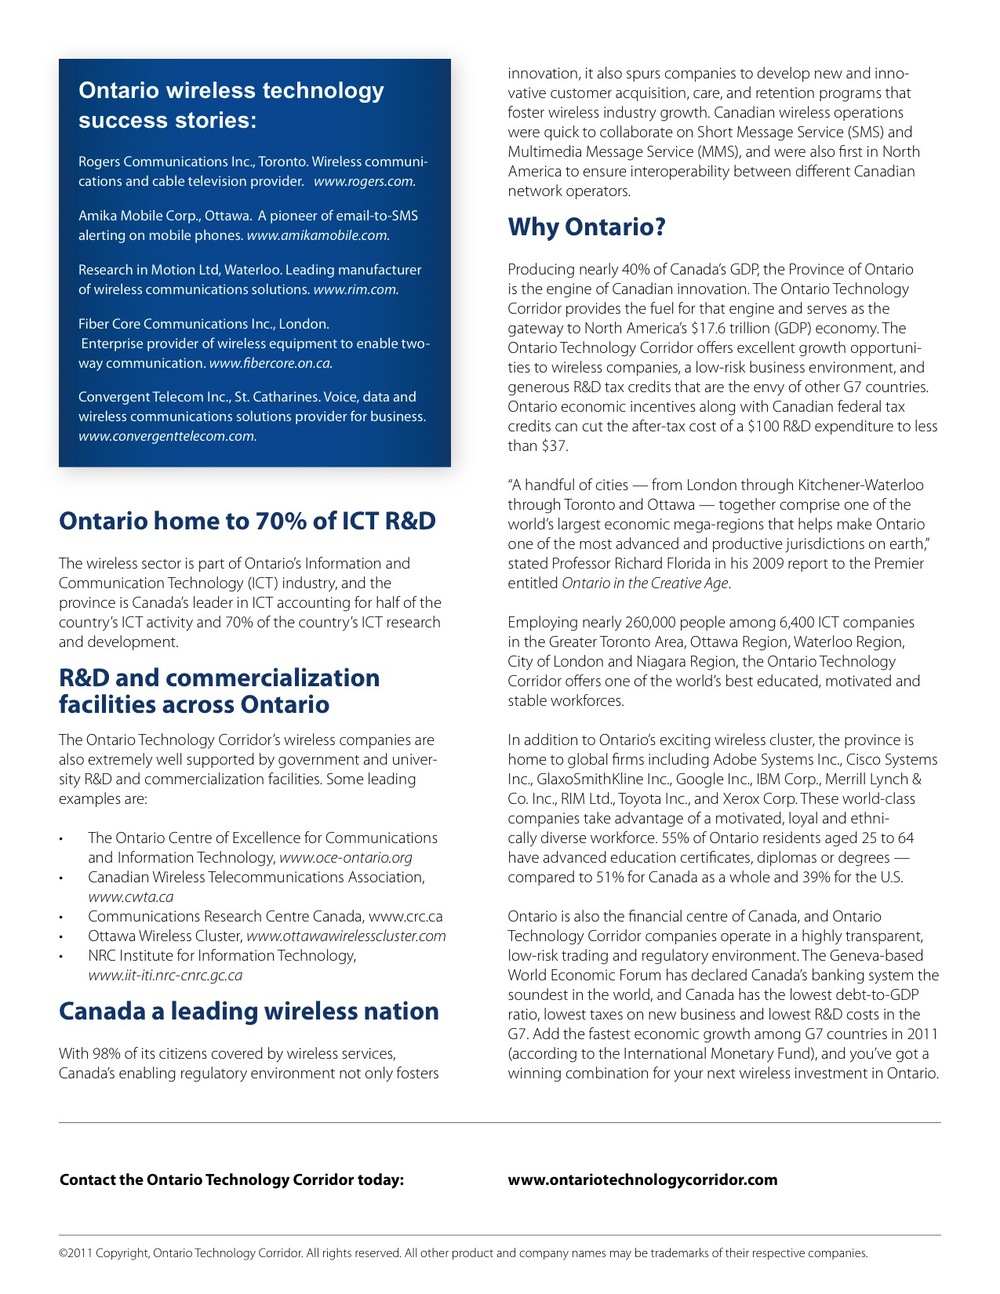 OTC-wireless-feb2011-view-page2.jpg